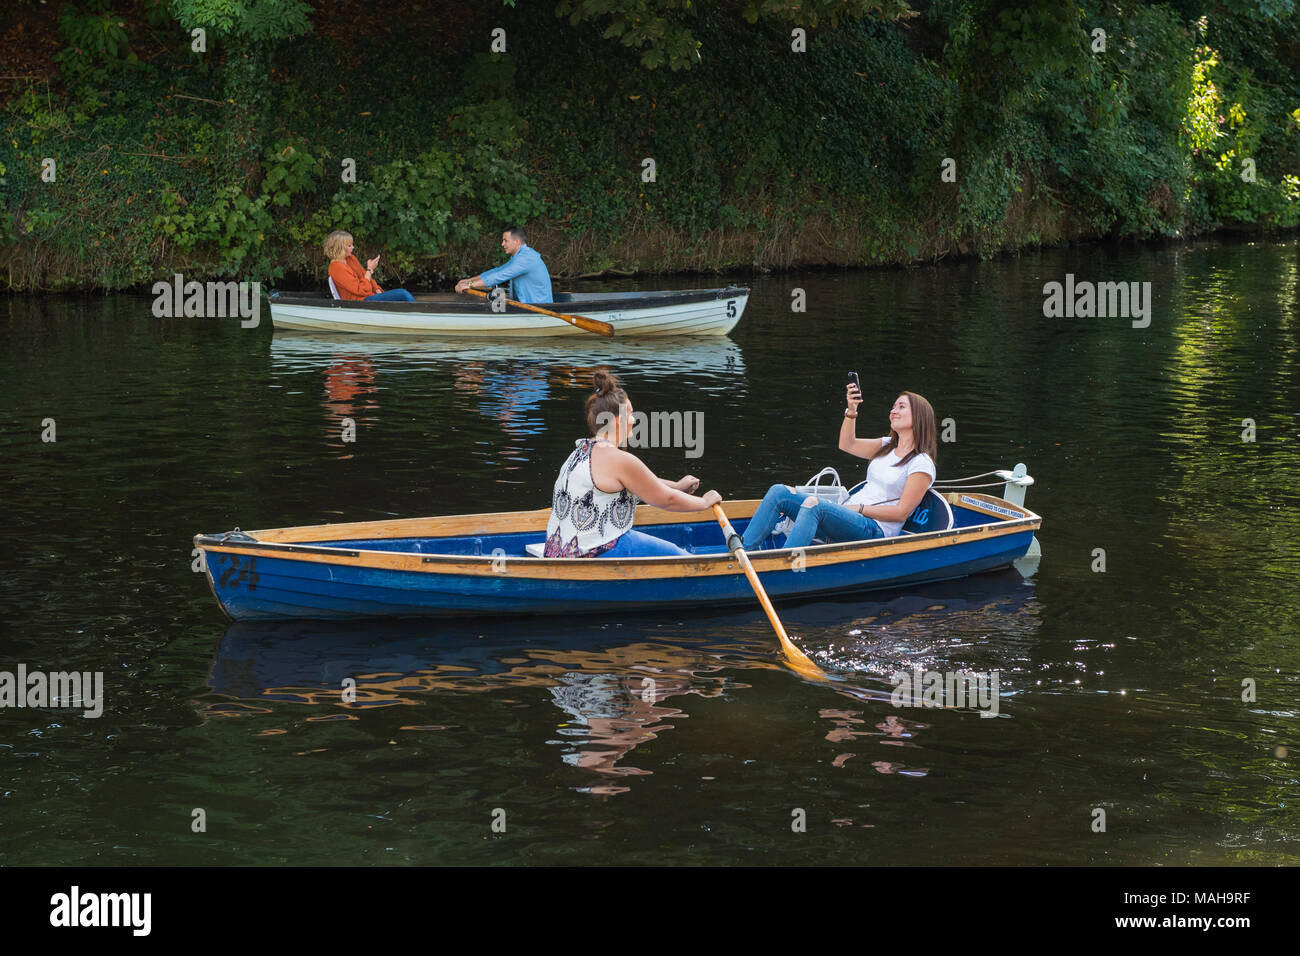 4 people boating, relaxing & having fun in 2 rowing boats (1 young woman in boat is taking selfie) - River Nidd in summer, Knaresborough, England, UK. - Stock Image